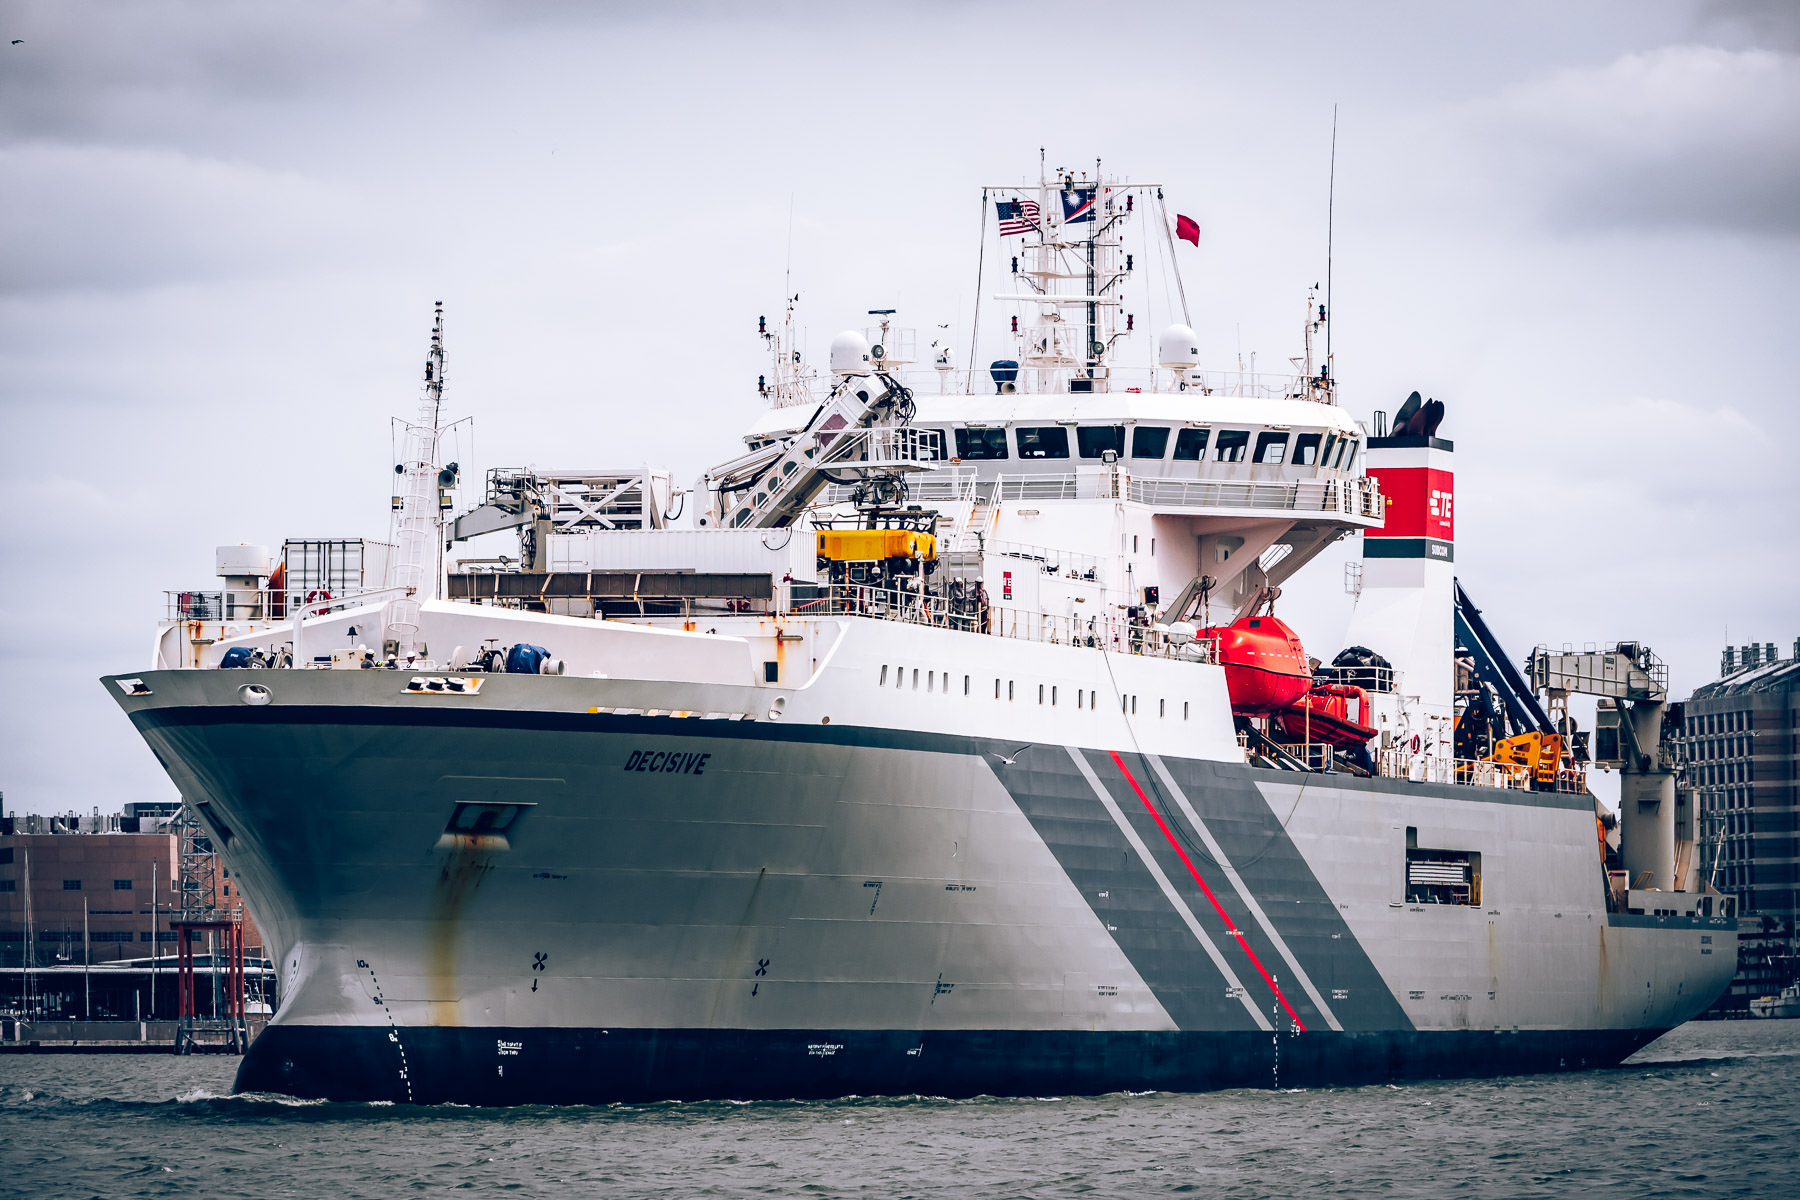 The cable-laying shipDecisive heads out of port at Galveston, Texas.